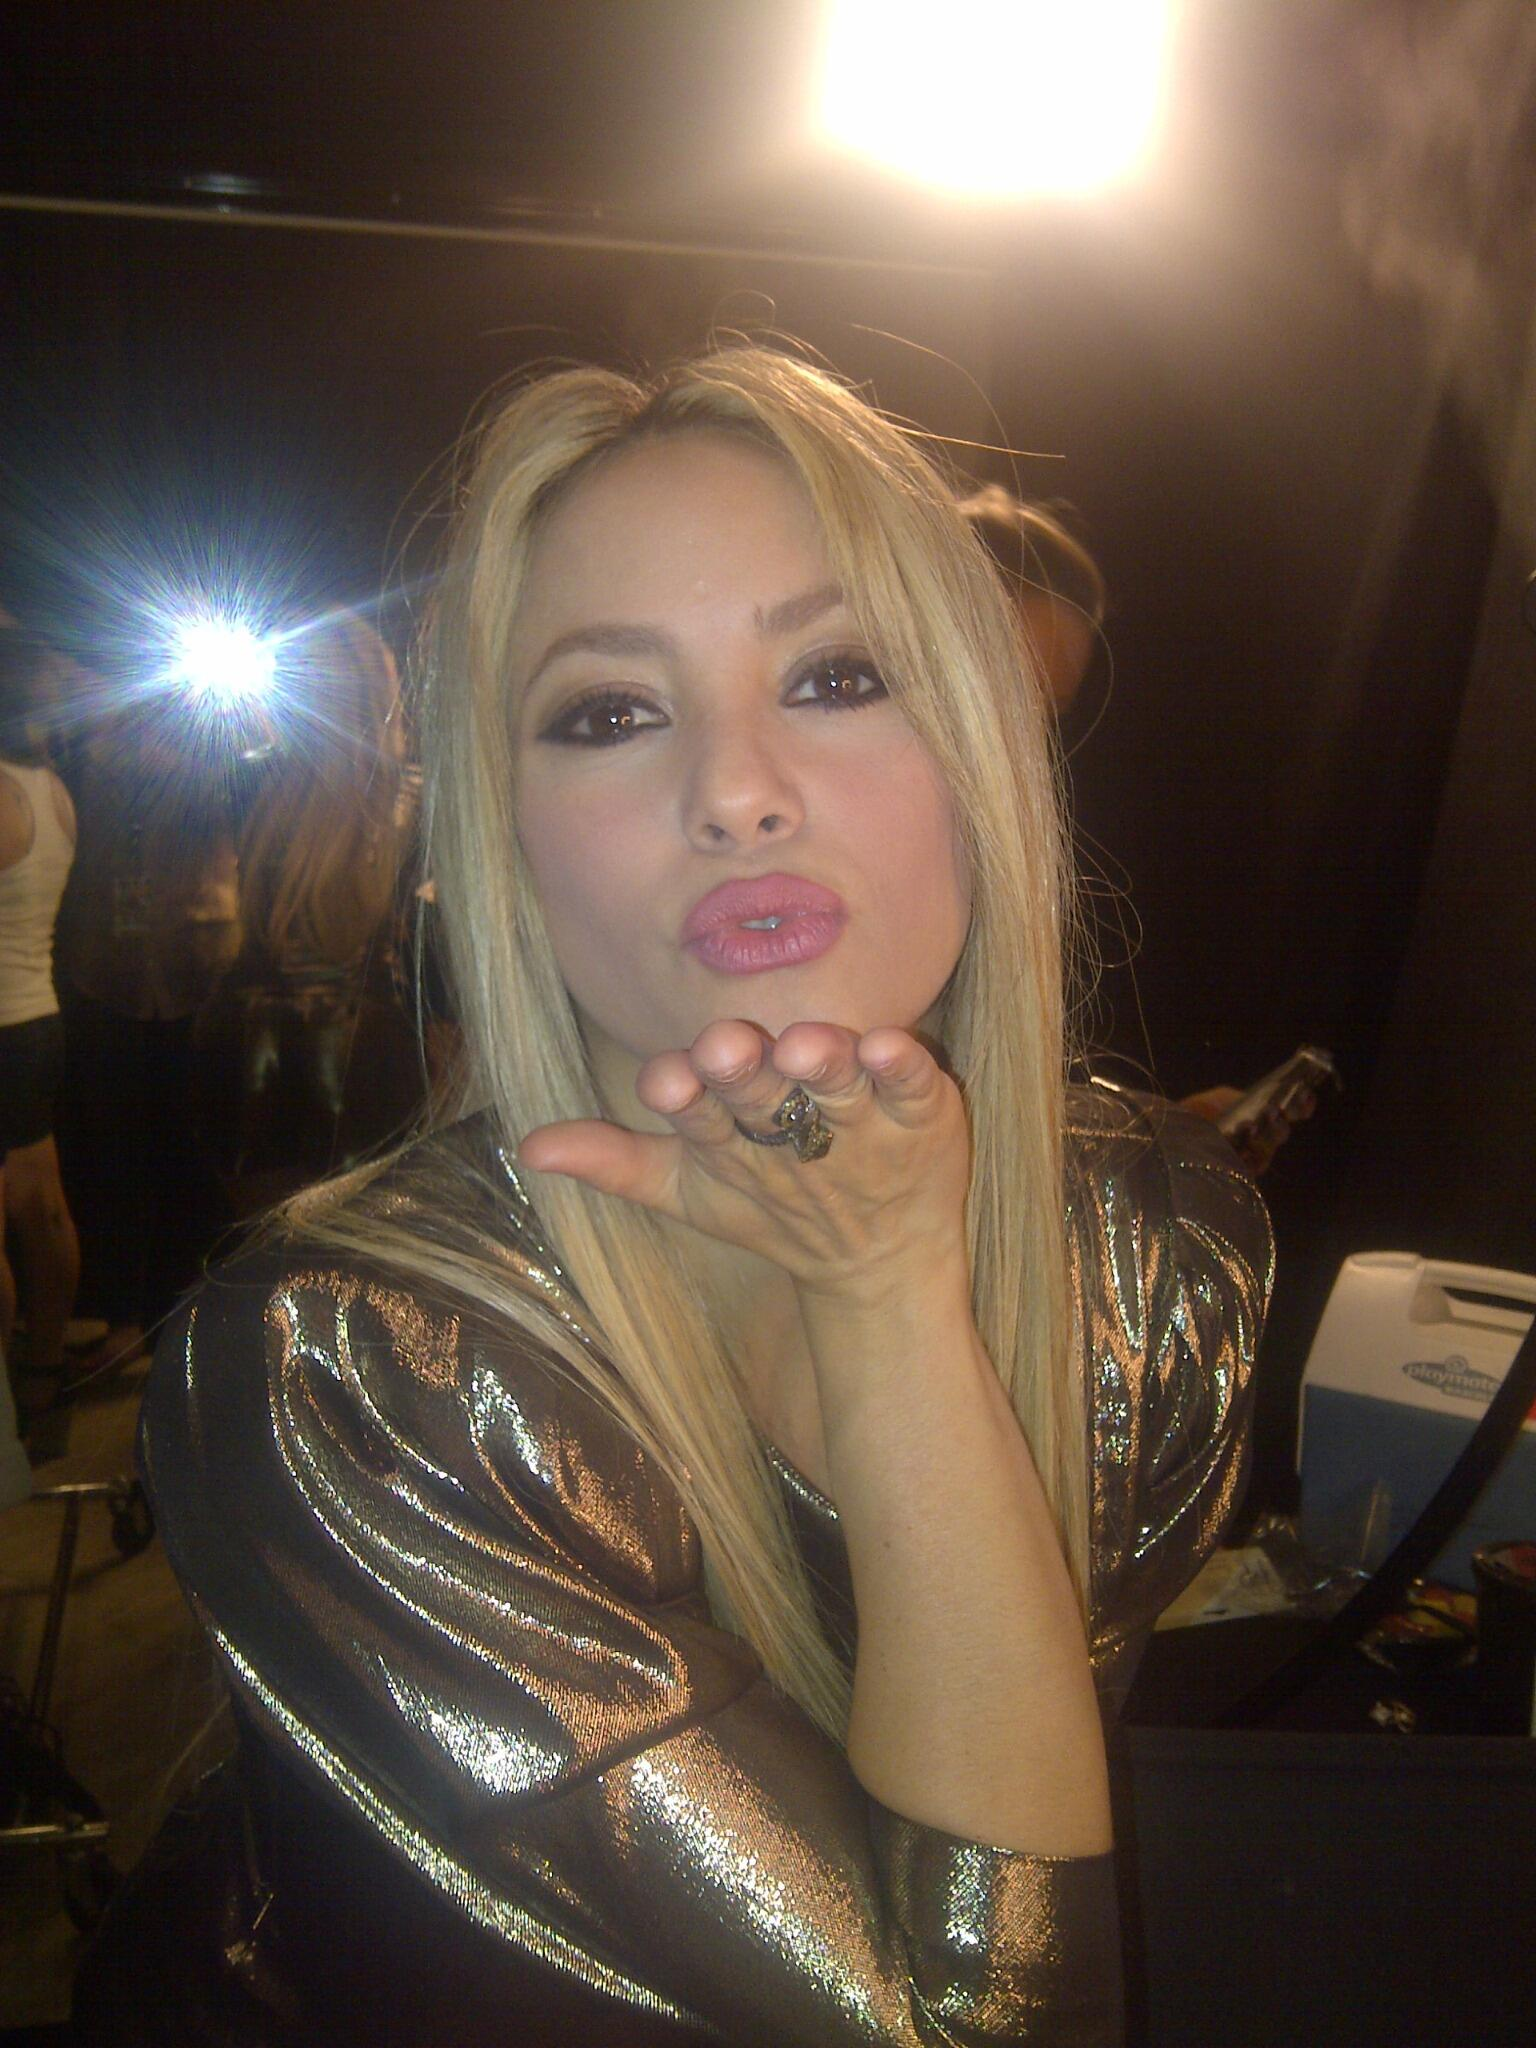 A little kiss for my #shakifans to thank you, you are the best in the whole world!!! -Shak http://t.co/iwIPdrnFu8